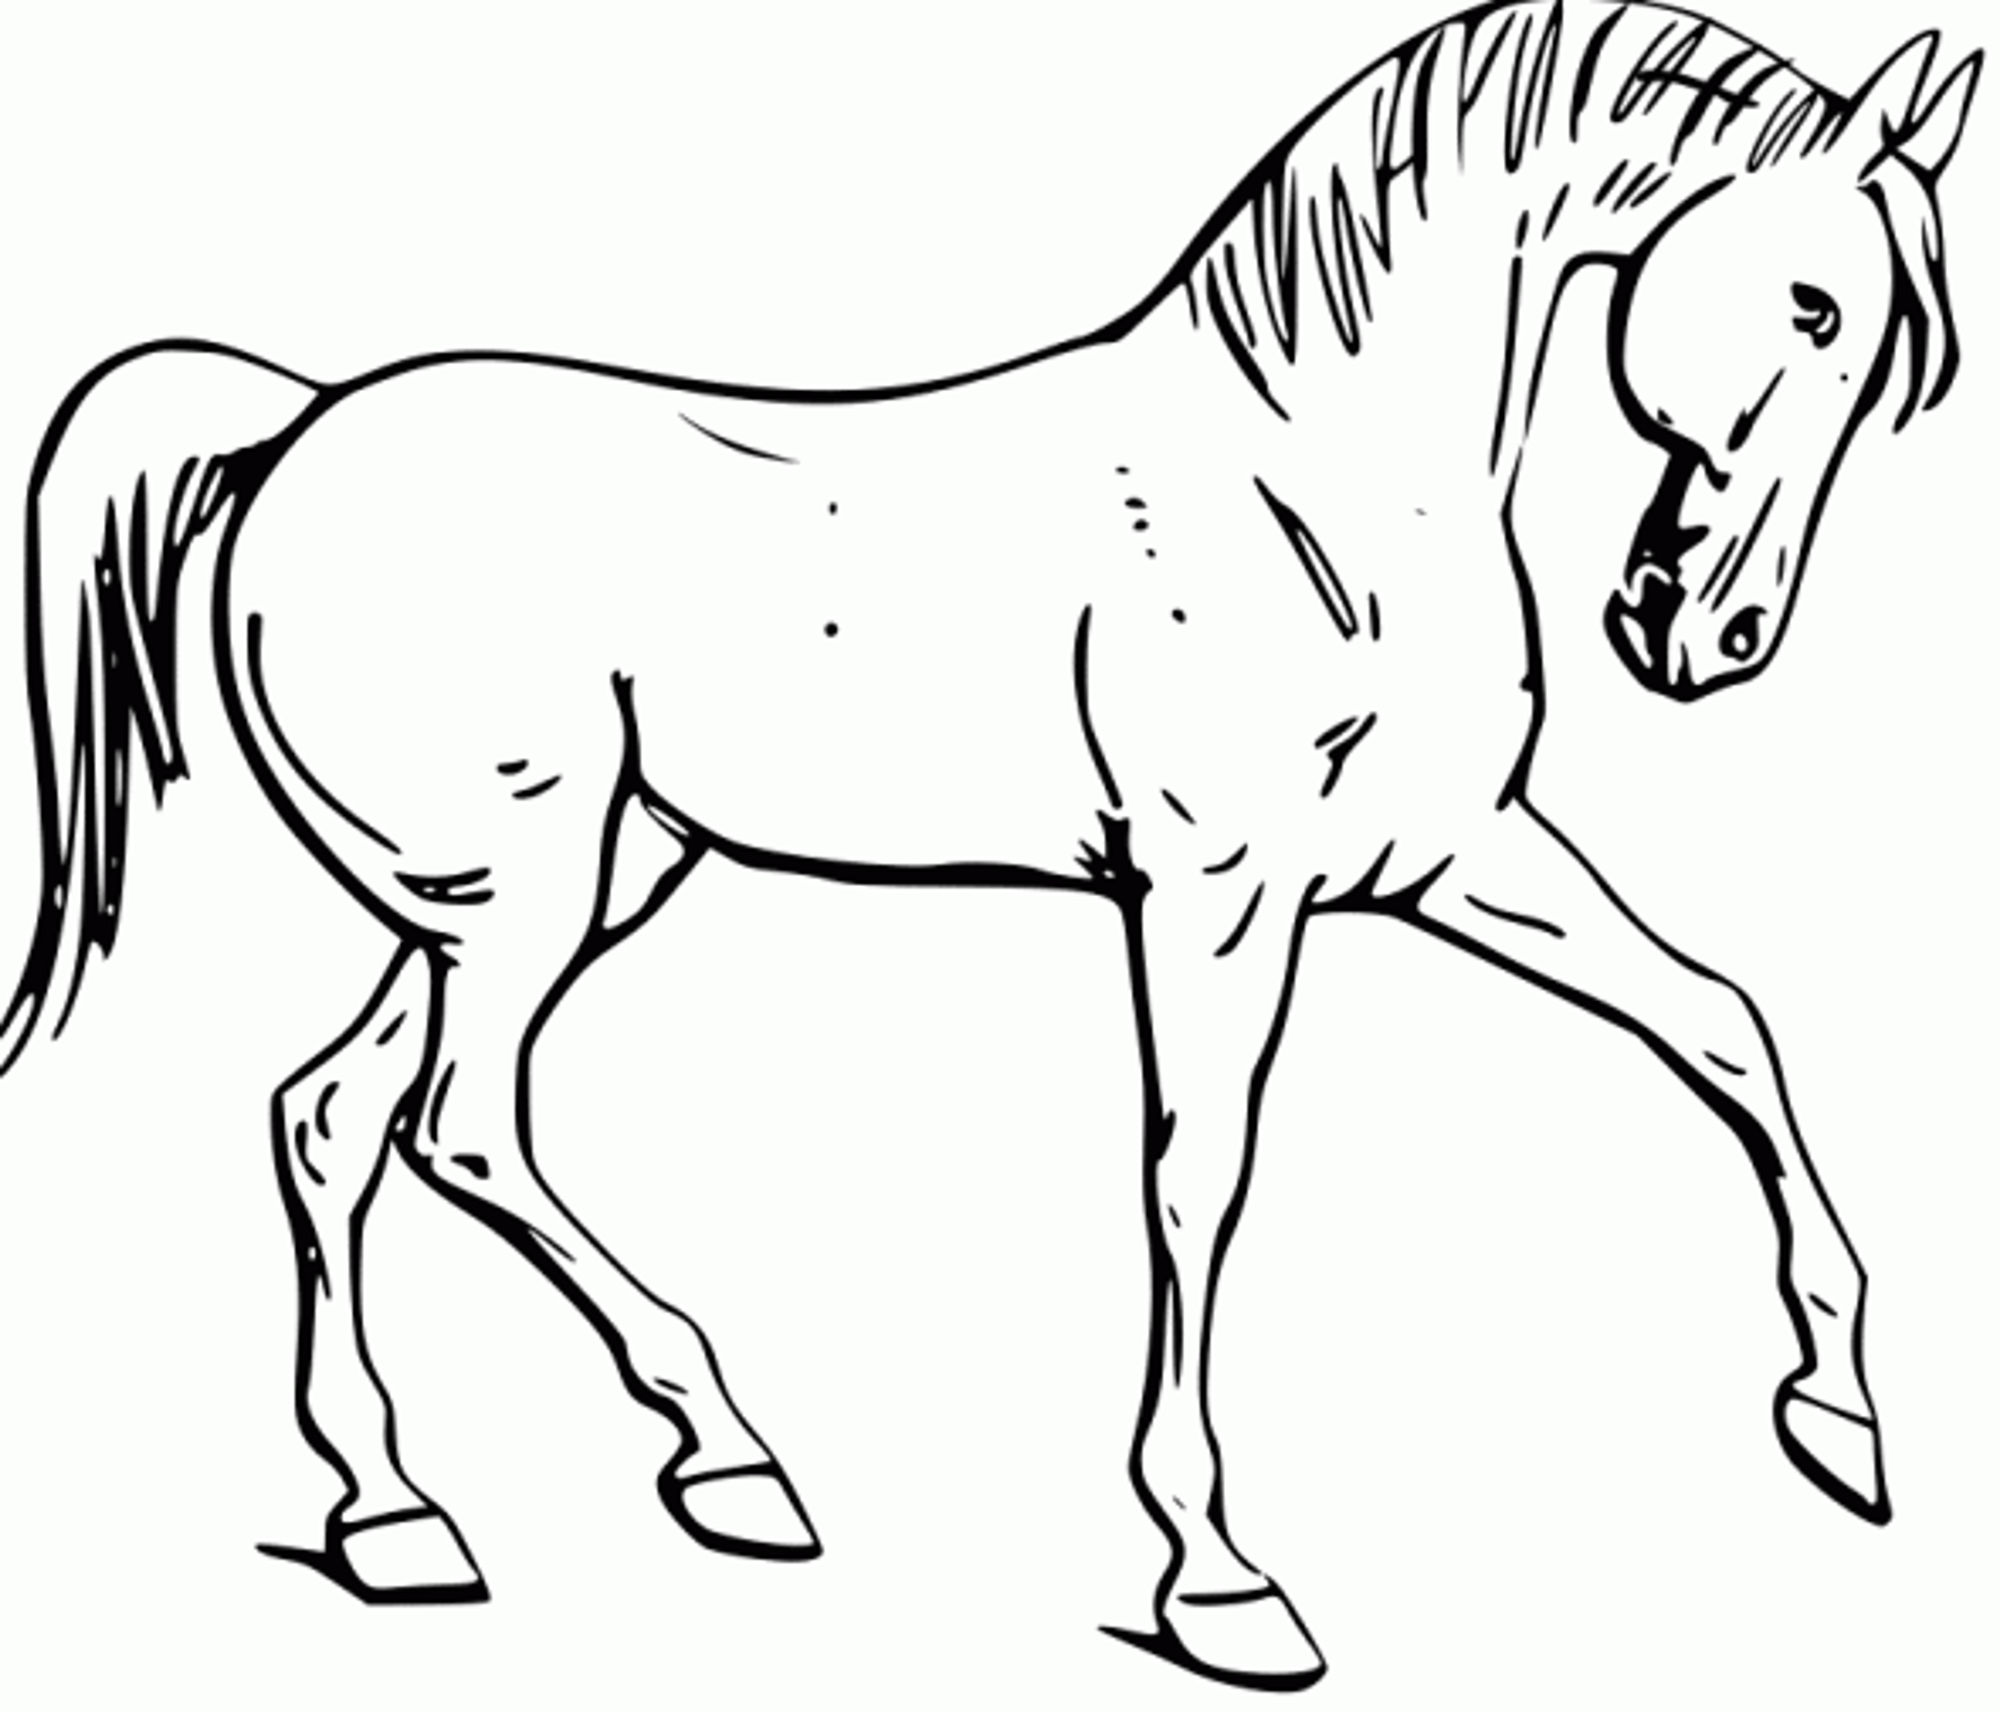 Mustang Horse Coloring Pages Printable At Getcolorings